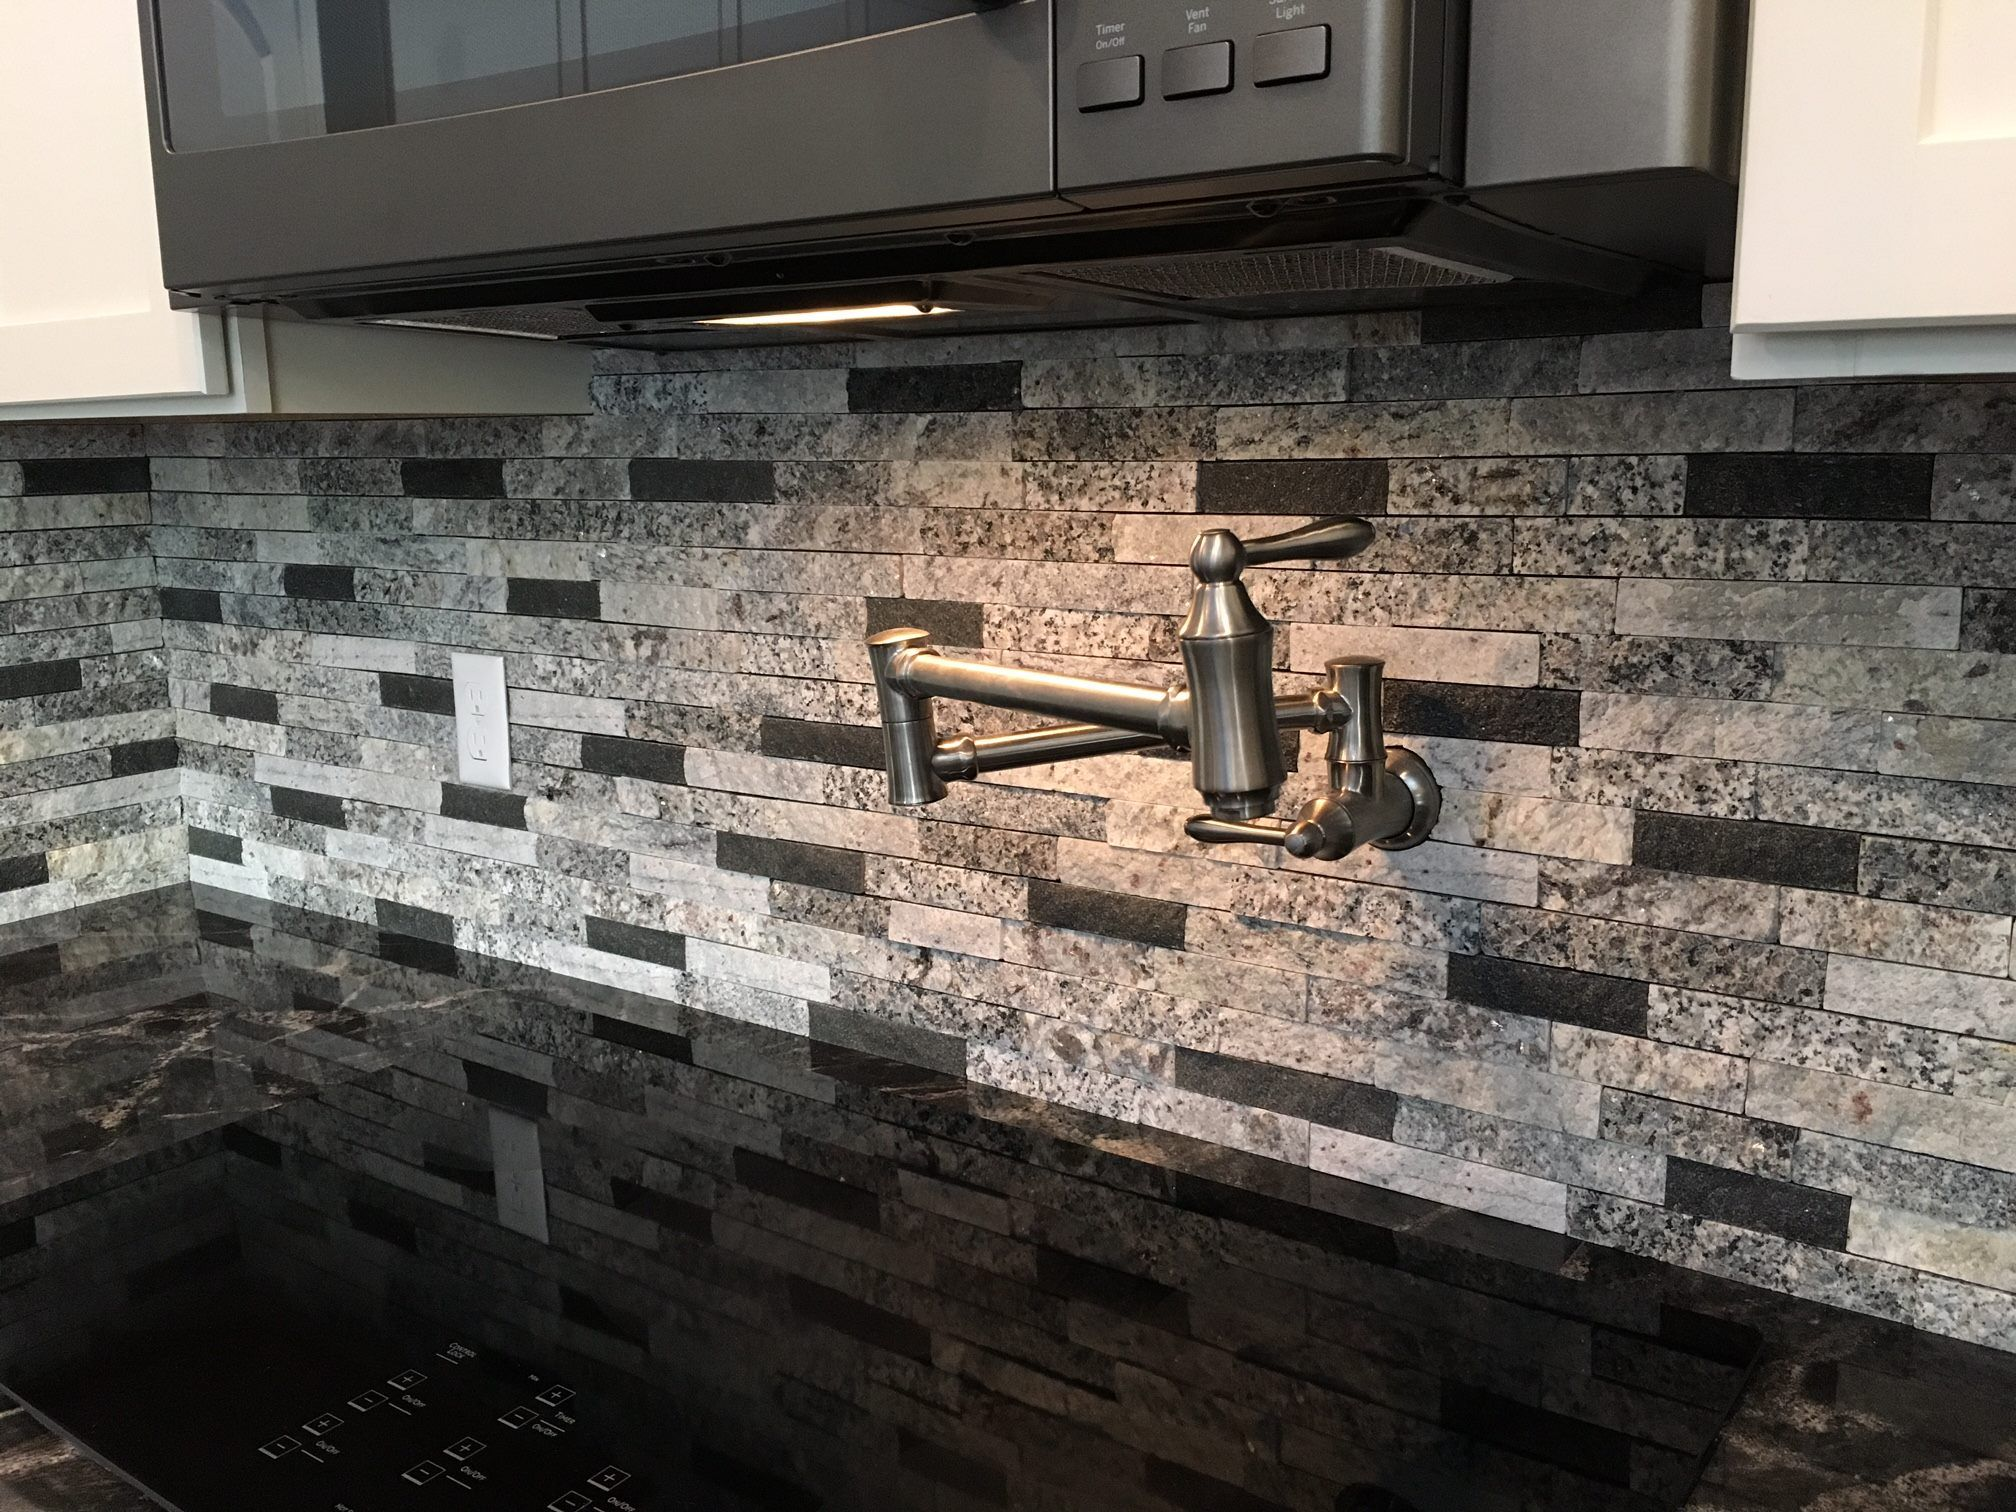 Charmant Recycled Granite Split Stone Tile In Our Shades Of Gray Blend With Black  Accents To Match The Black Granite Countertops. The Pot Filler Is Killer!